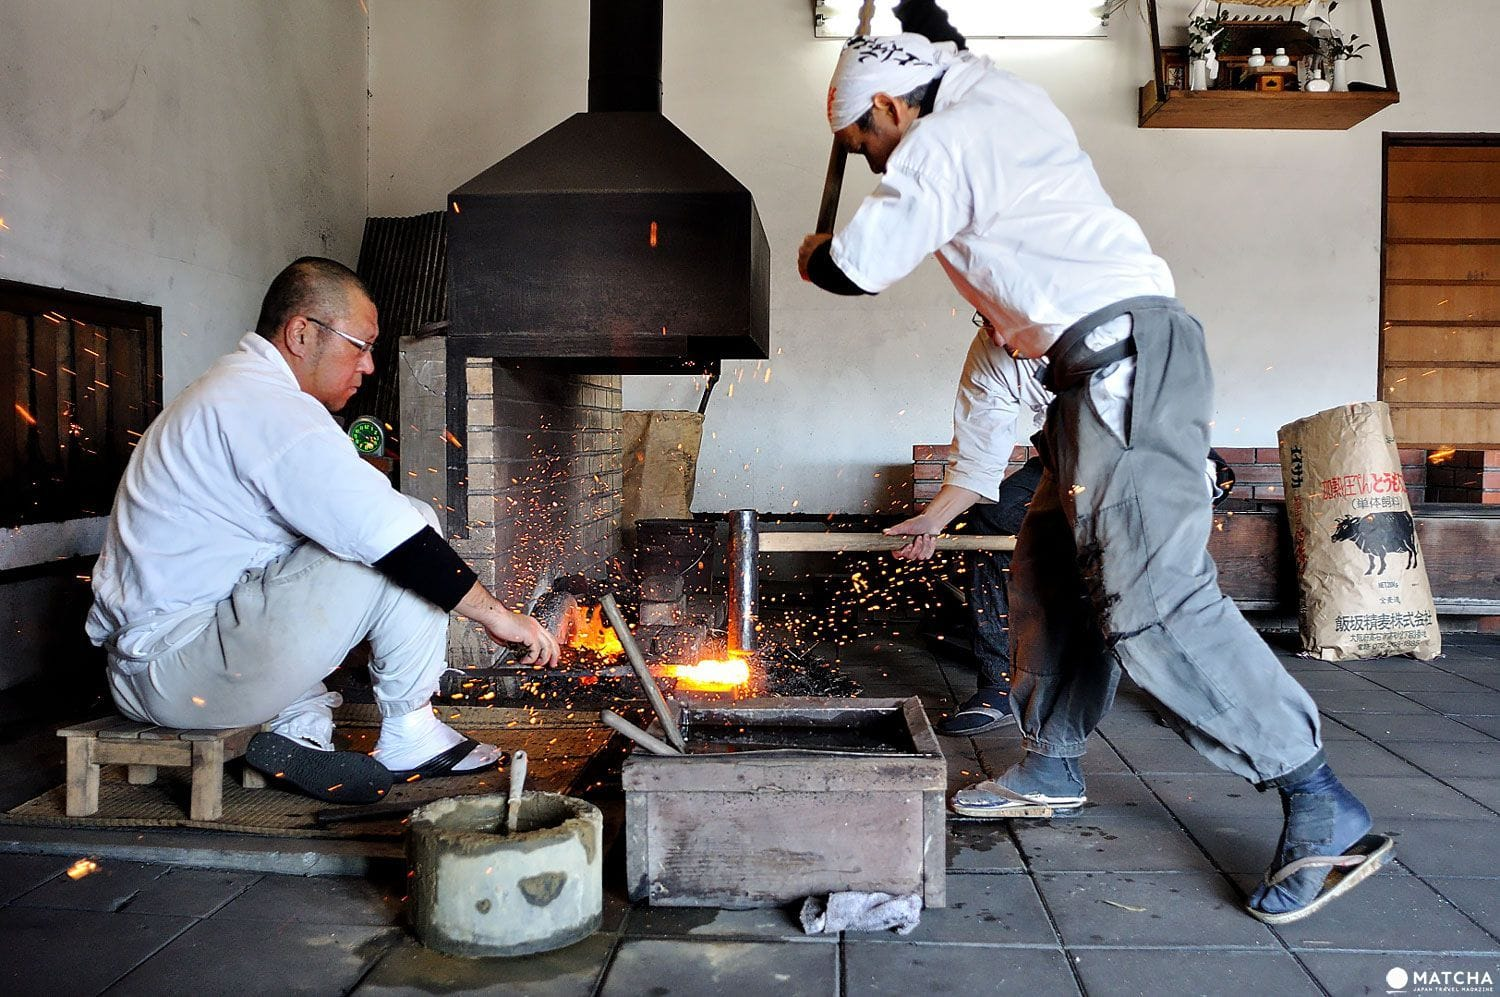 Witness The Making Of A Sword The Bizen Osafune Japanese